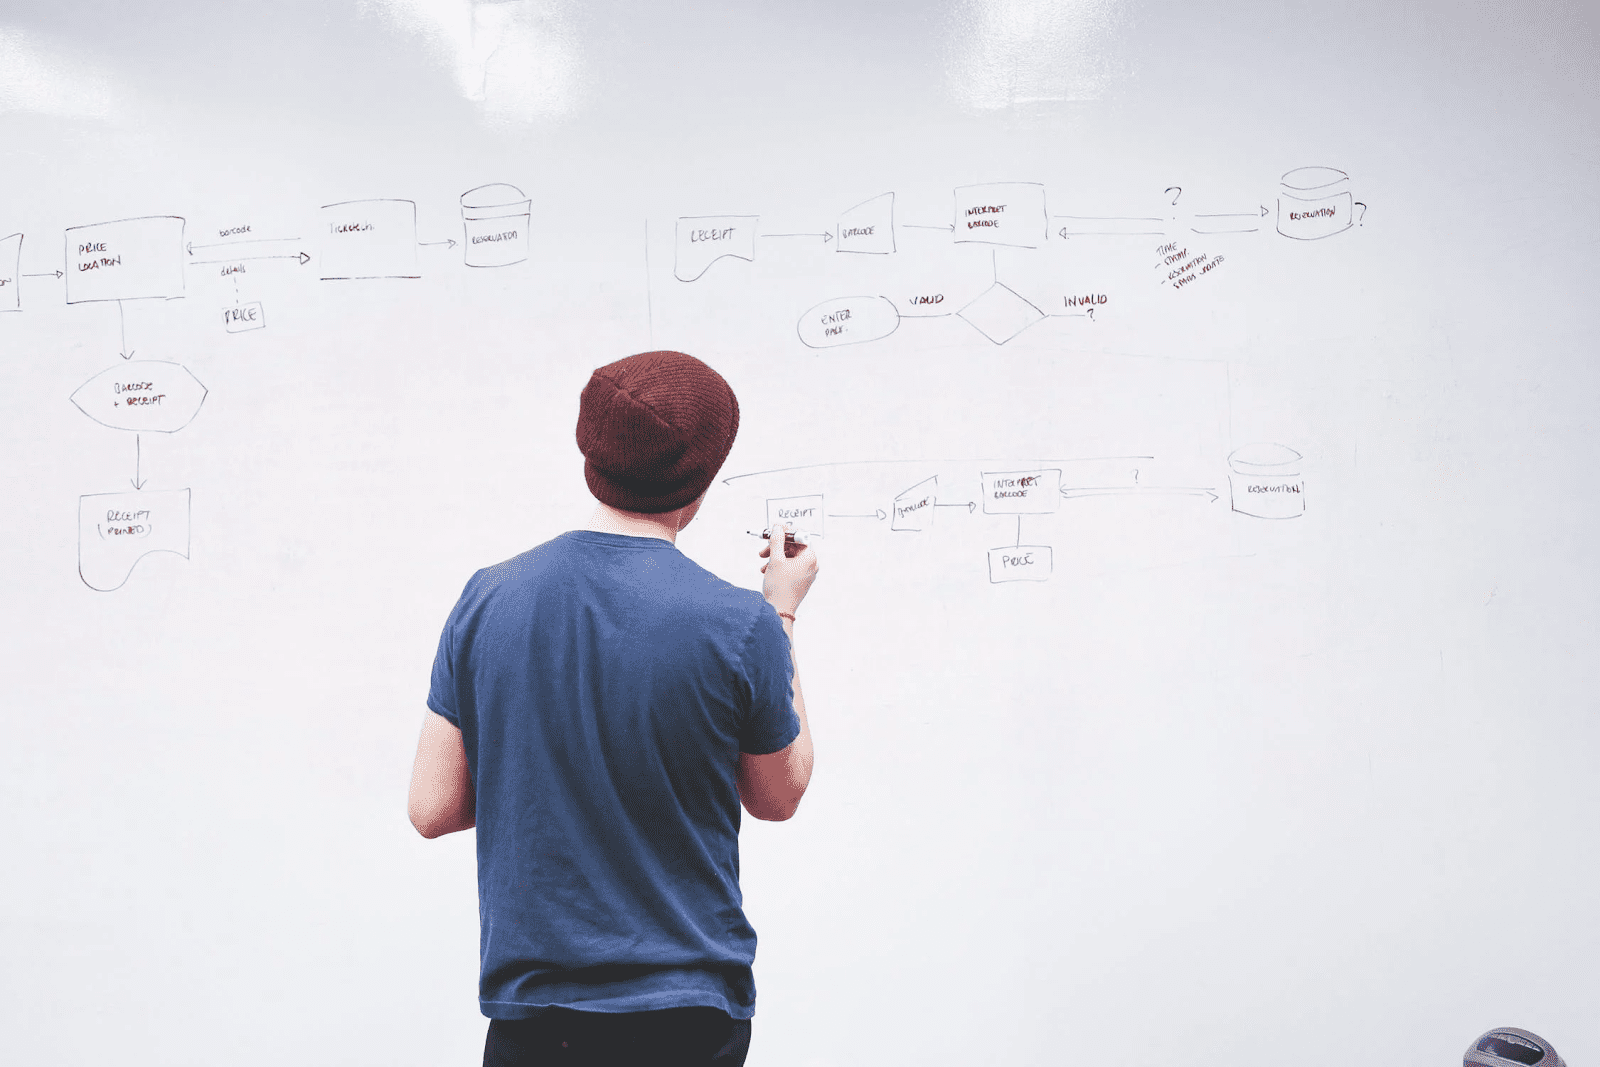 man working on project management methodologies on whiteboard